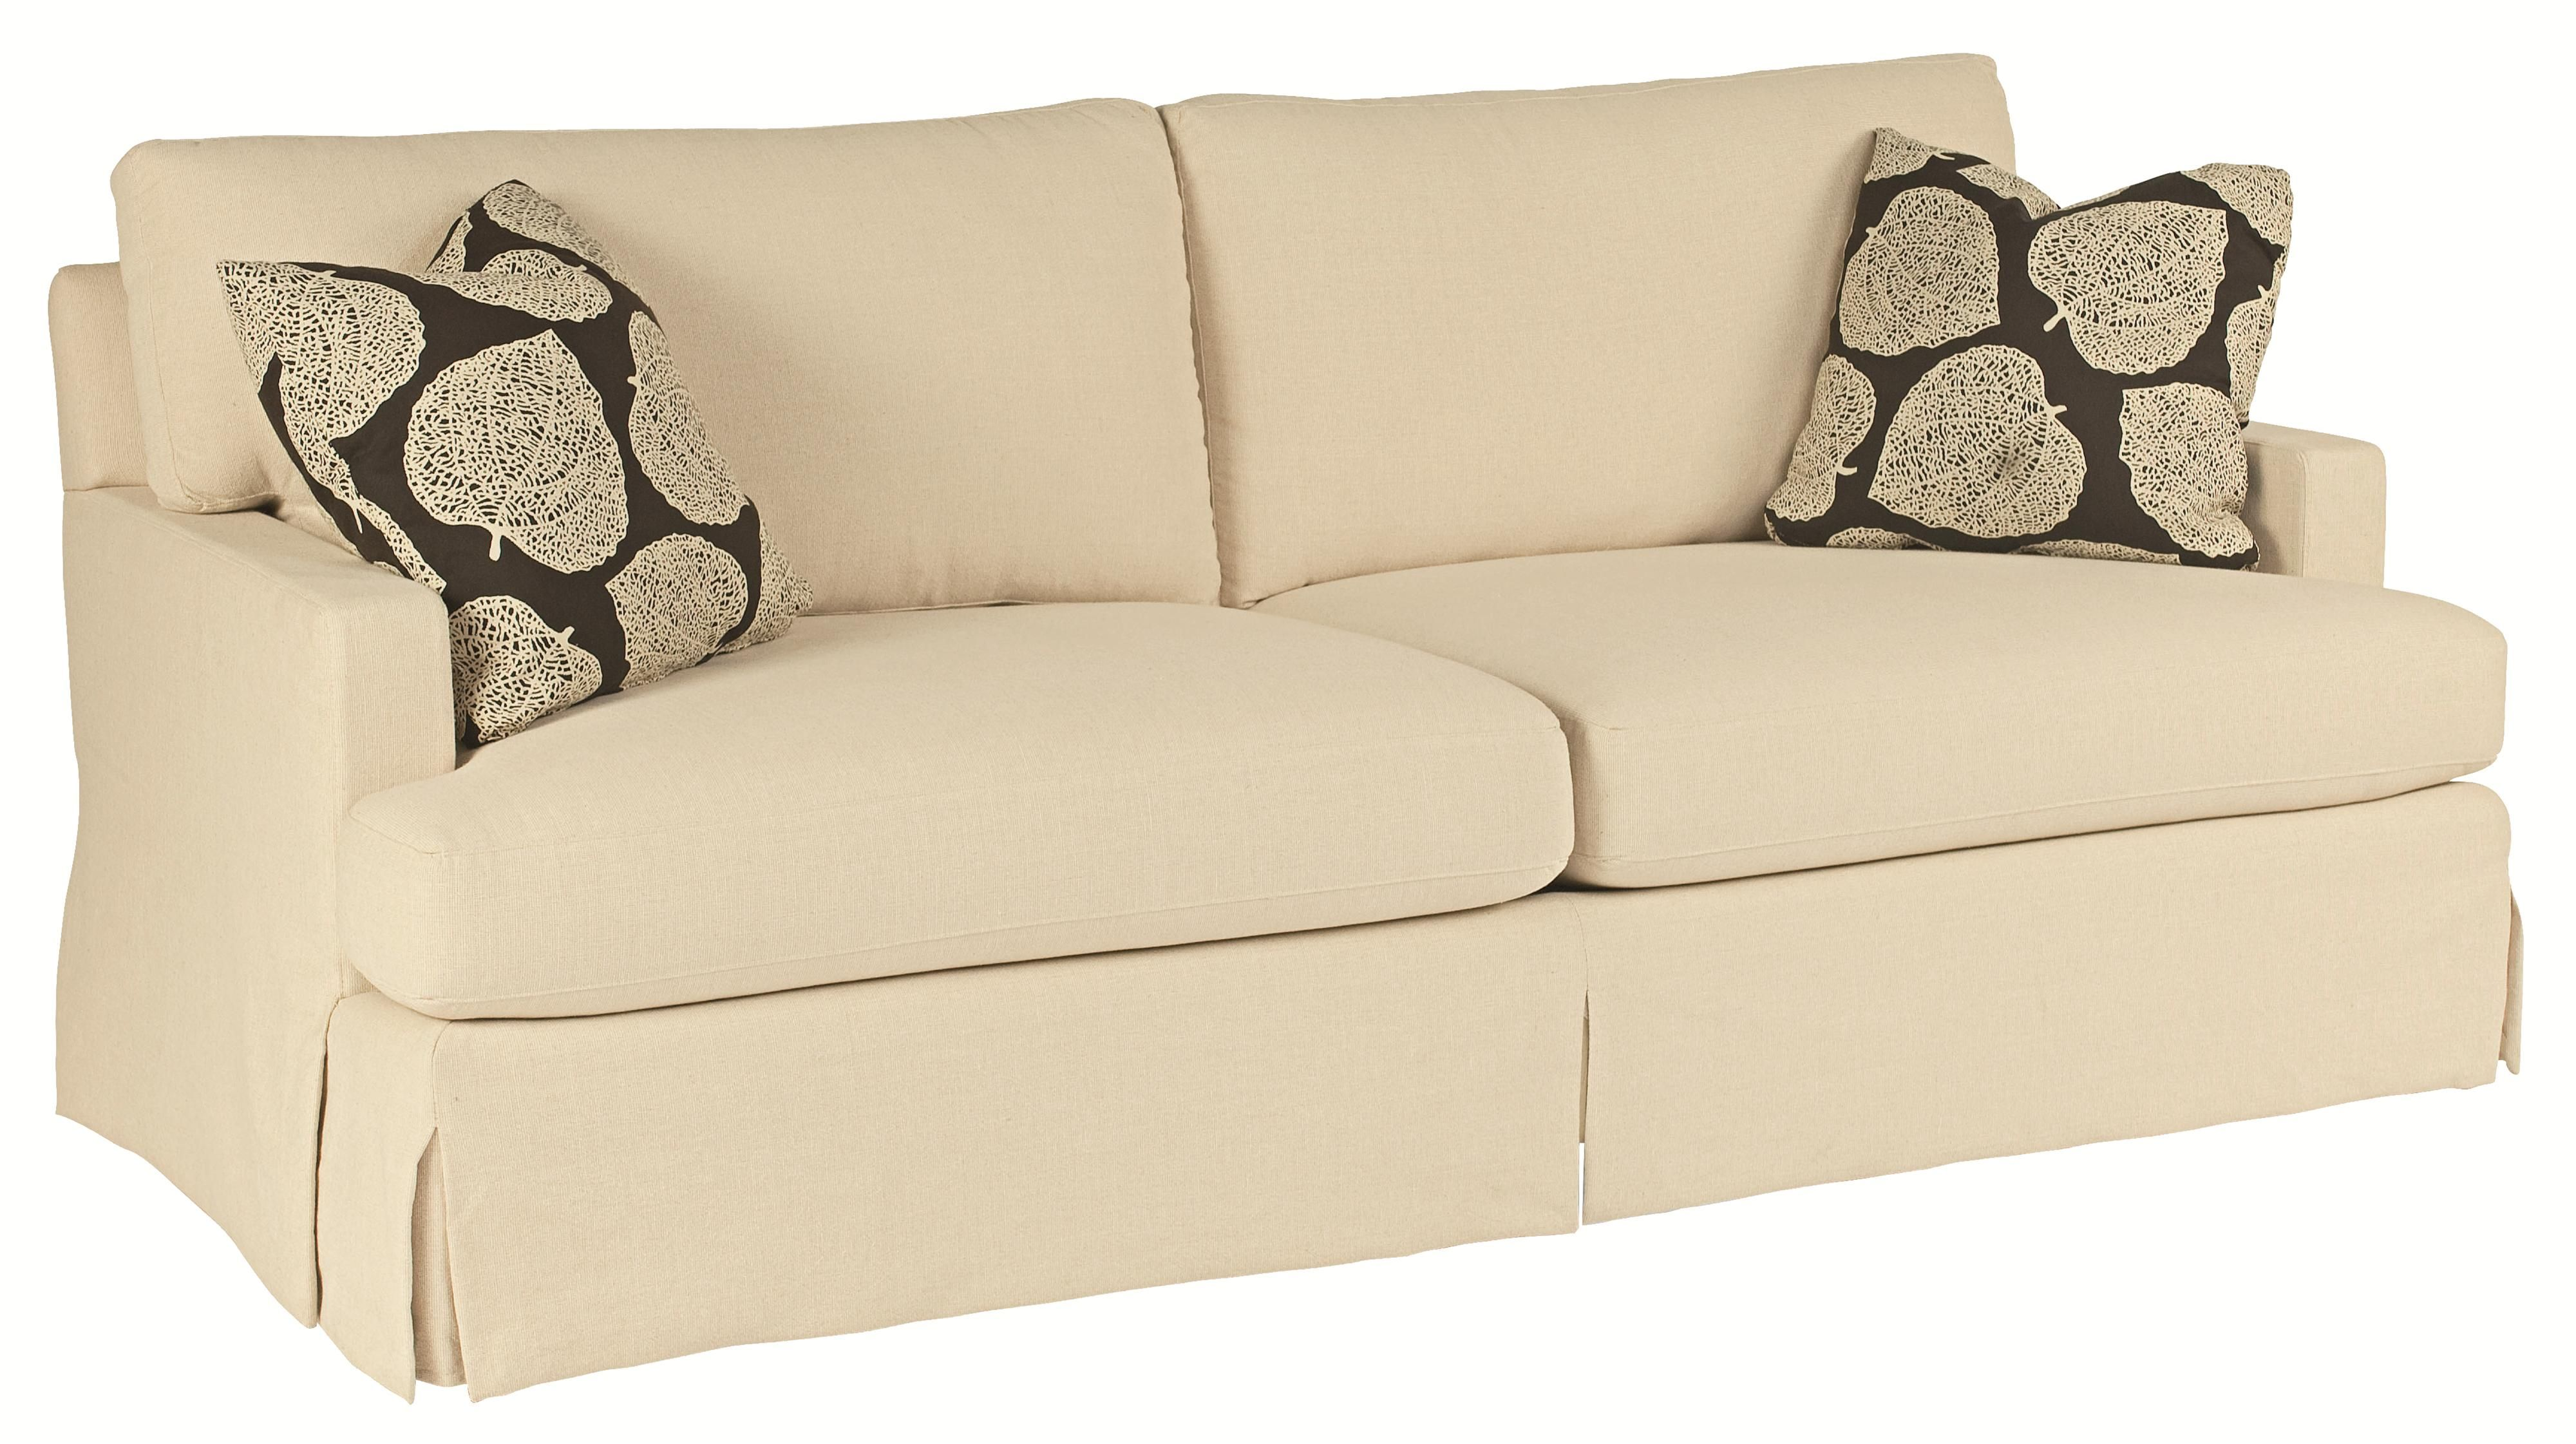 Bernhardt Ryder B628 Fresh and Classic Sofa Sleeper with Smooth